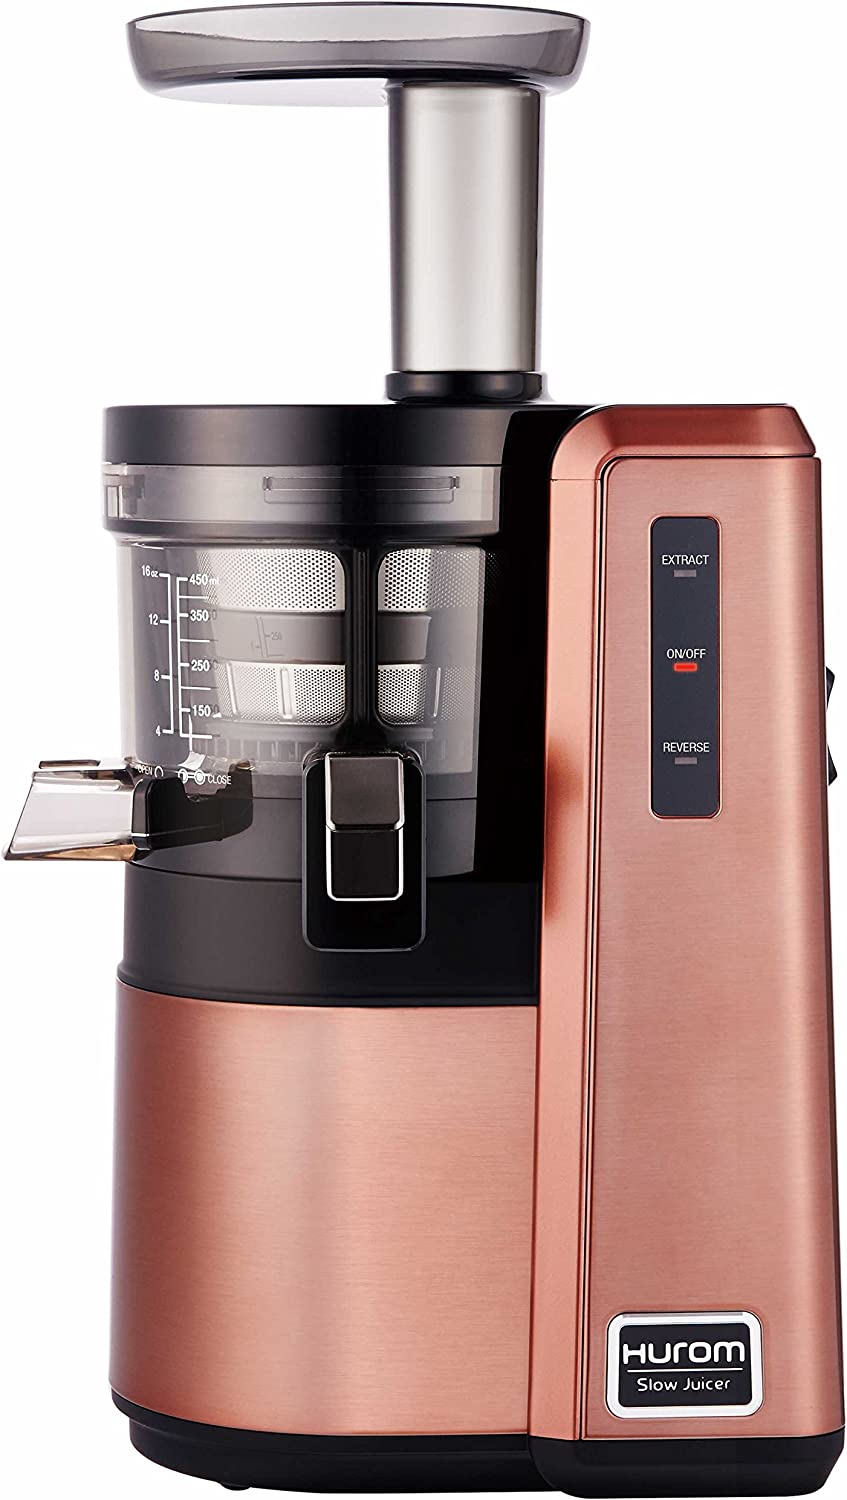 Best Juicer For Cleanse 2021 Review - Our Top Picks 6